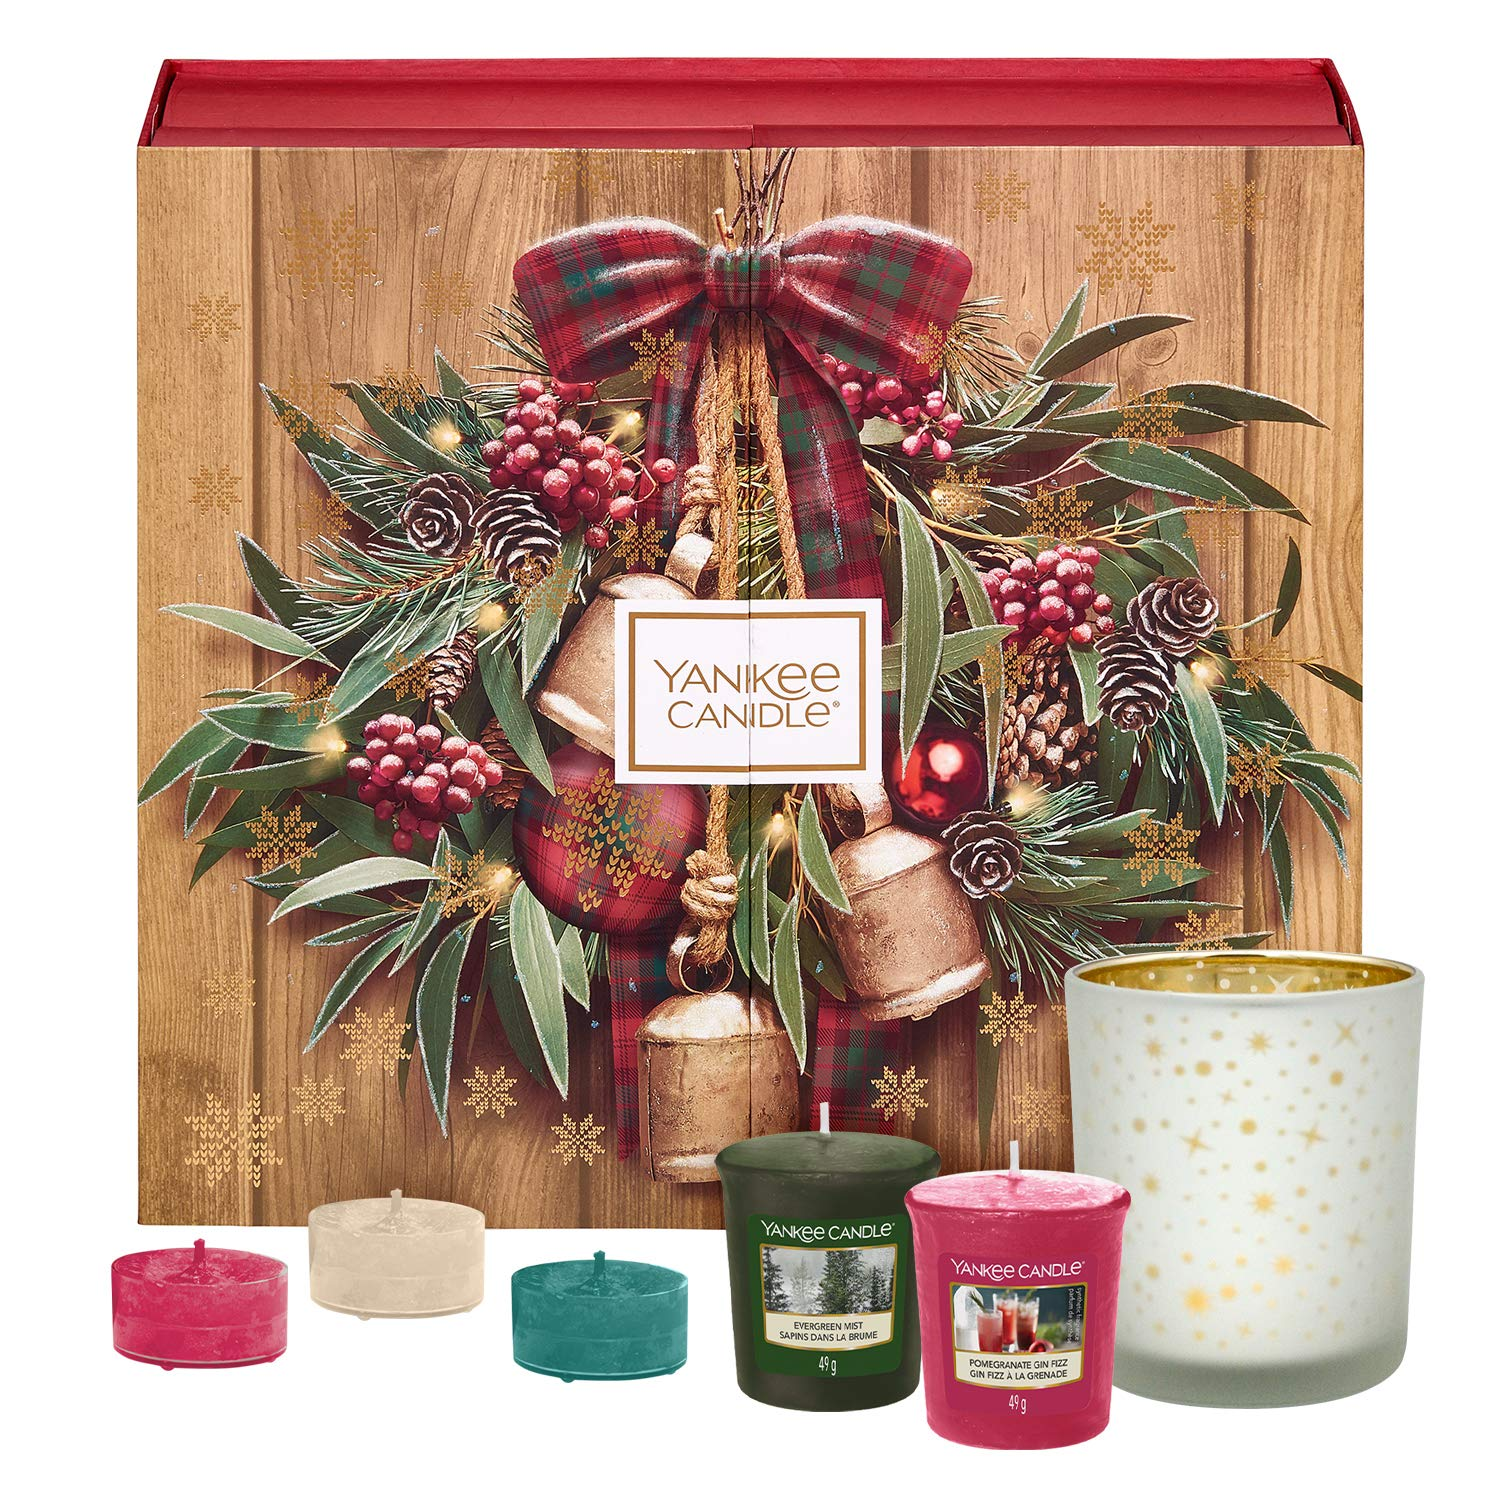 Yankee Candle Candle Gift Set, Alpine Christmas by Yankee Candle